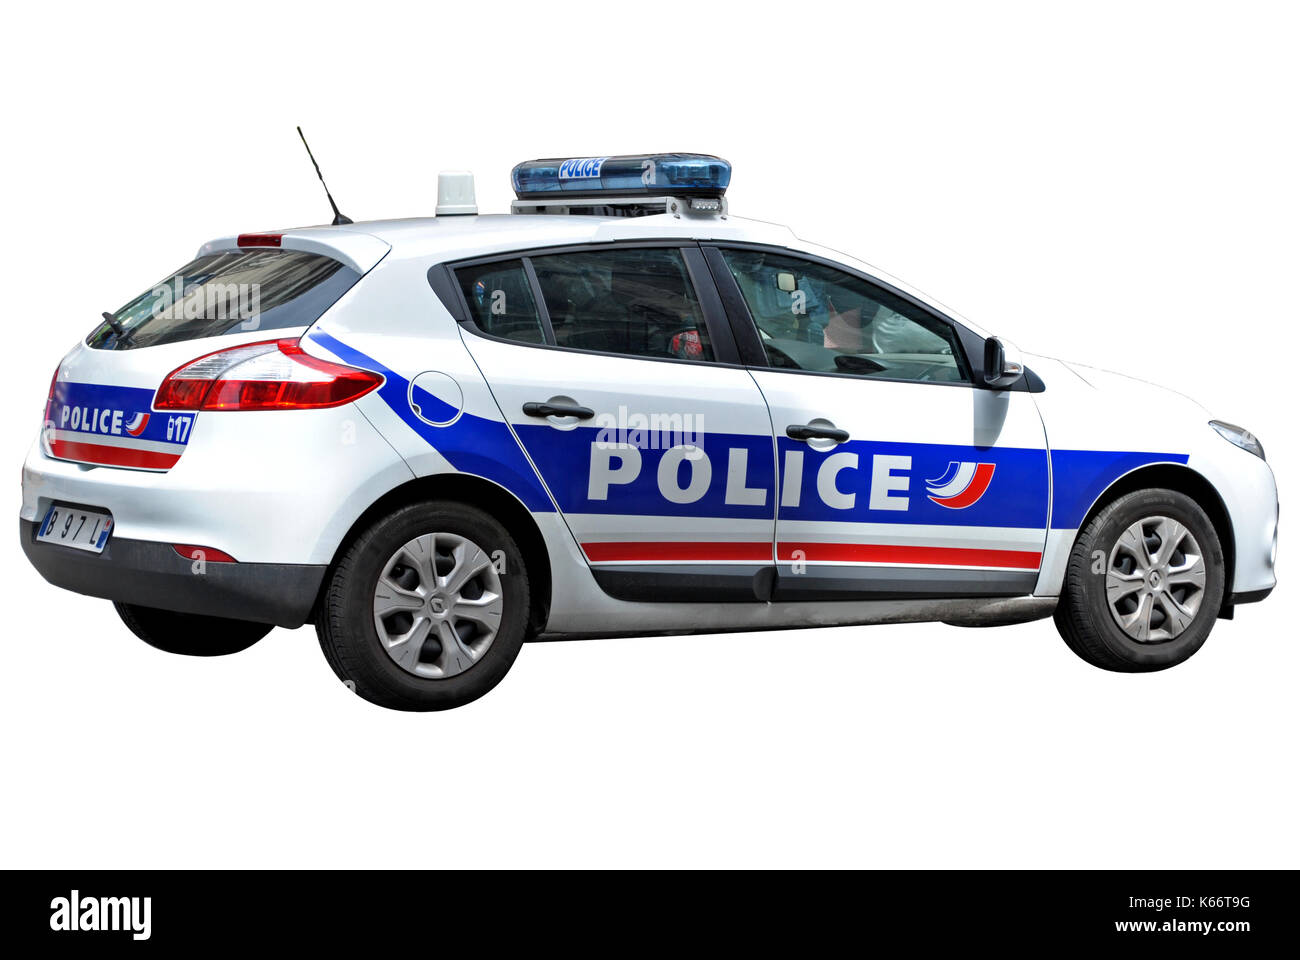 white police car photos white police car images alamy. Black Bedroom Furniture Sets. Home Design Ideas